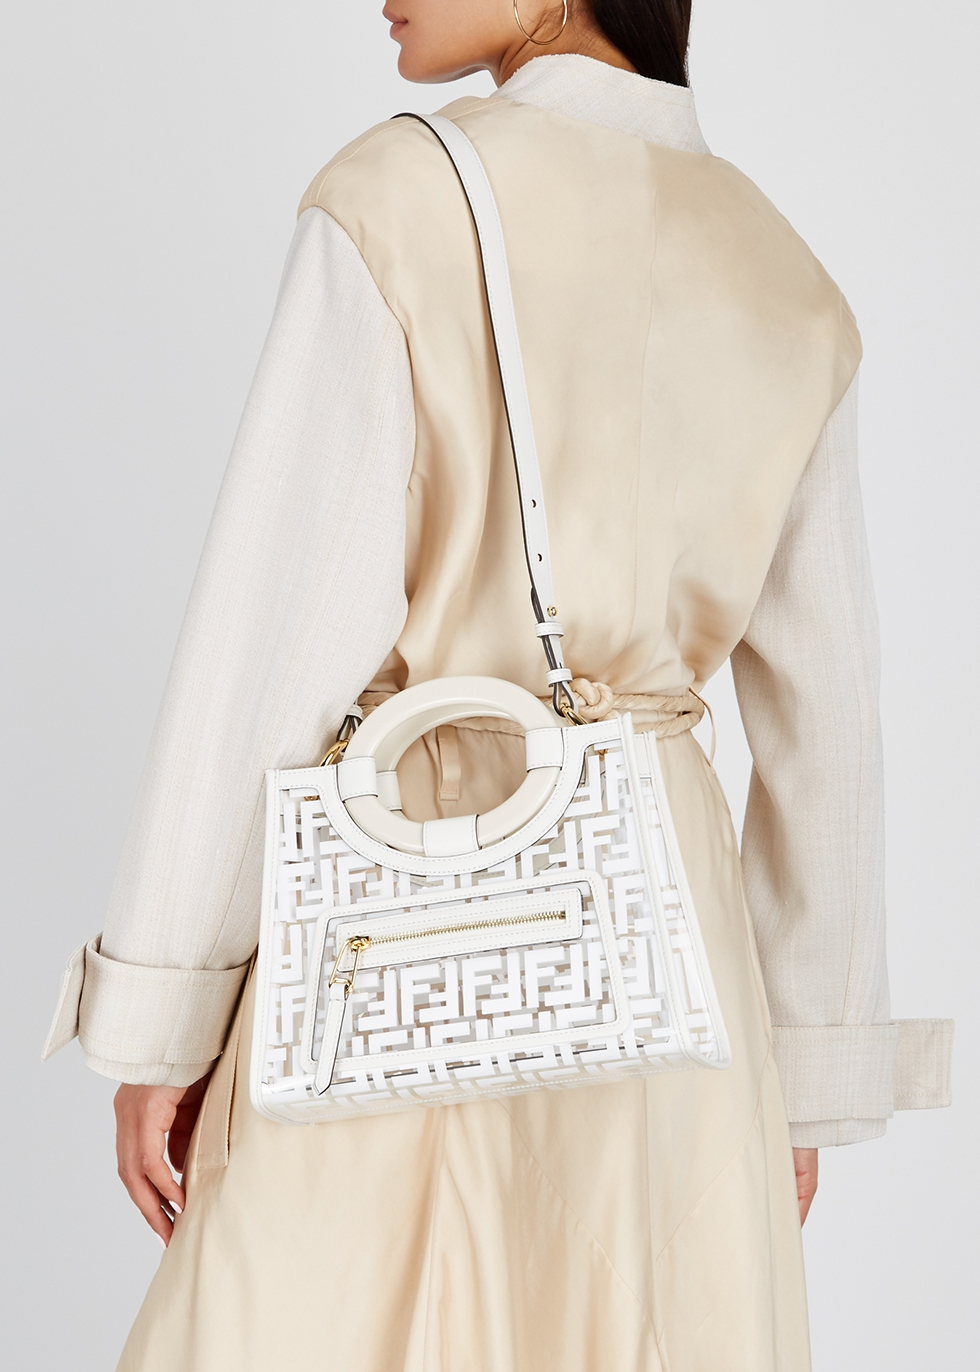 Runaway off-white PVC top handle bag - Fendi